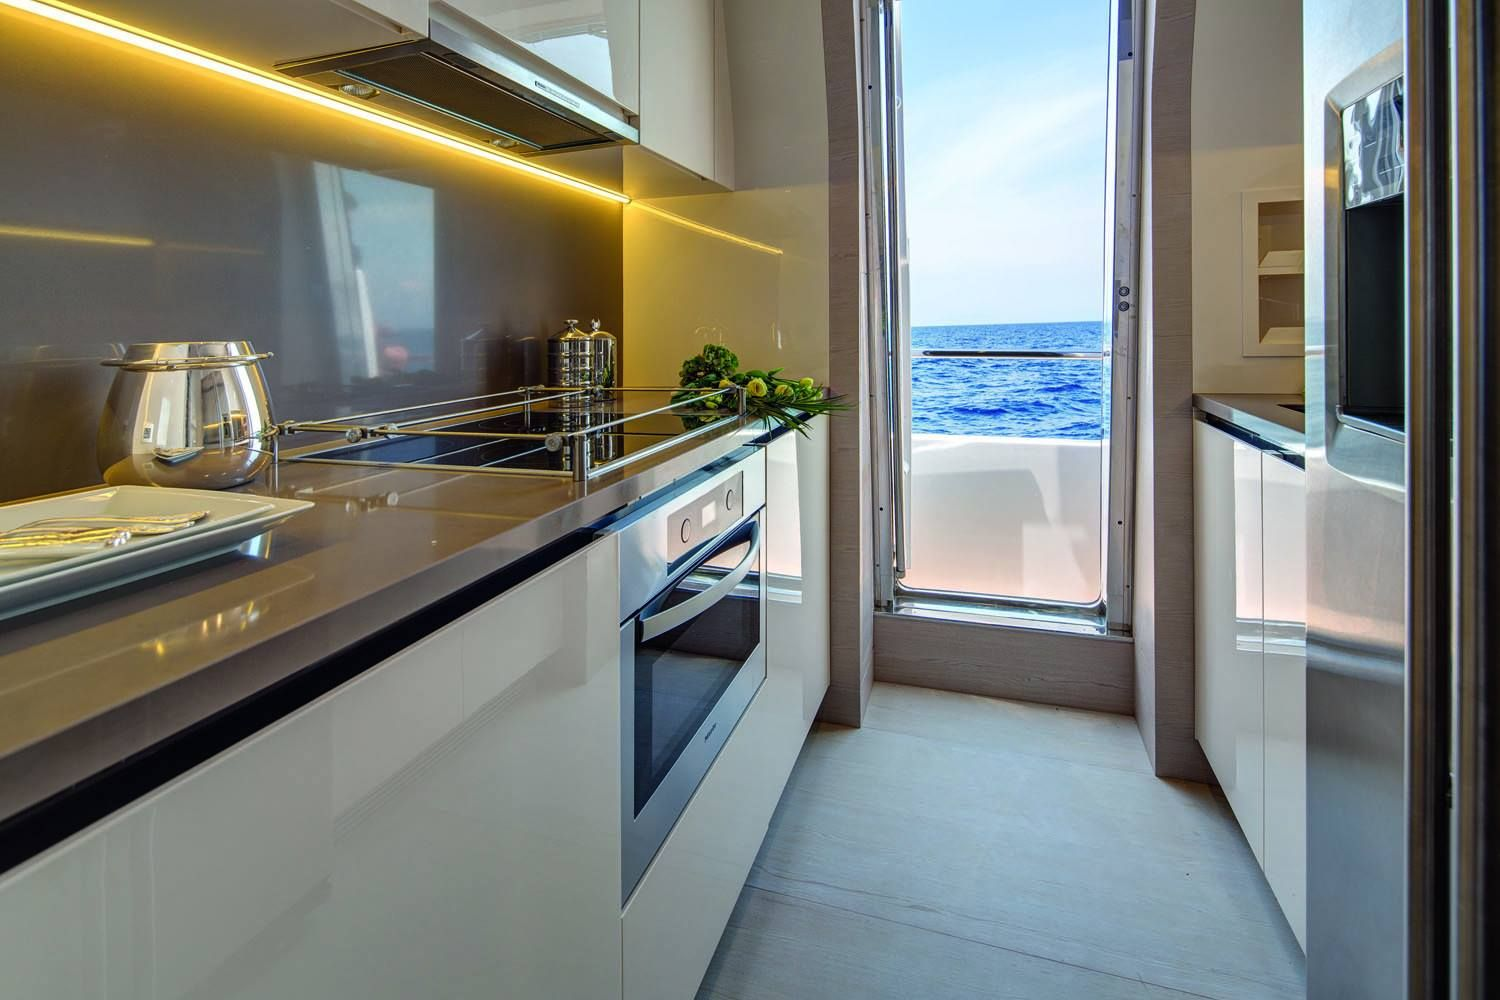 Azimut yachts interior kitchen seatech marine products daily watermakers yacht interiors Ship galley kitchen design